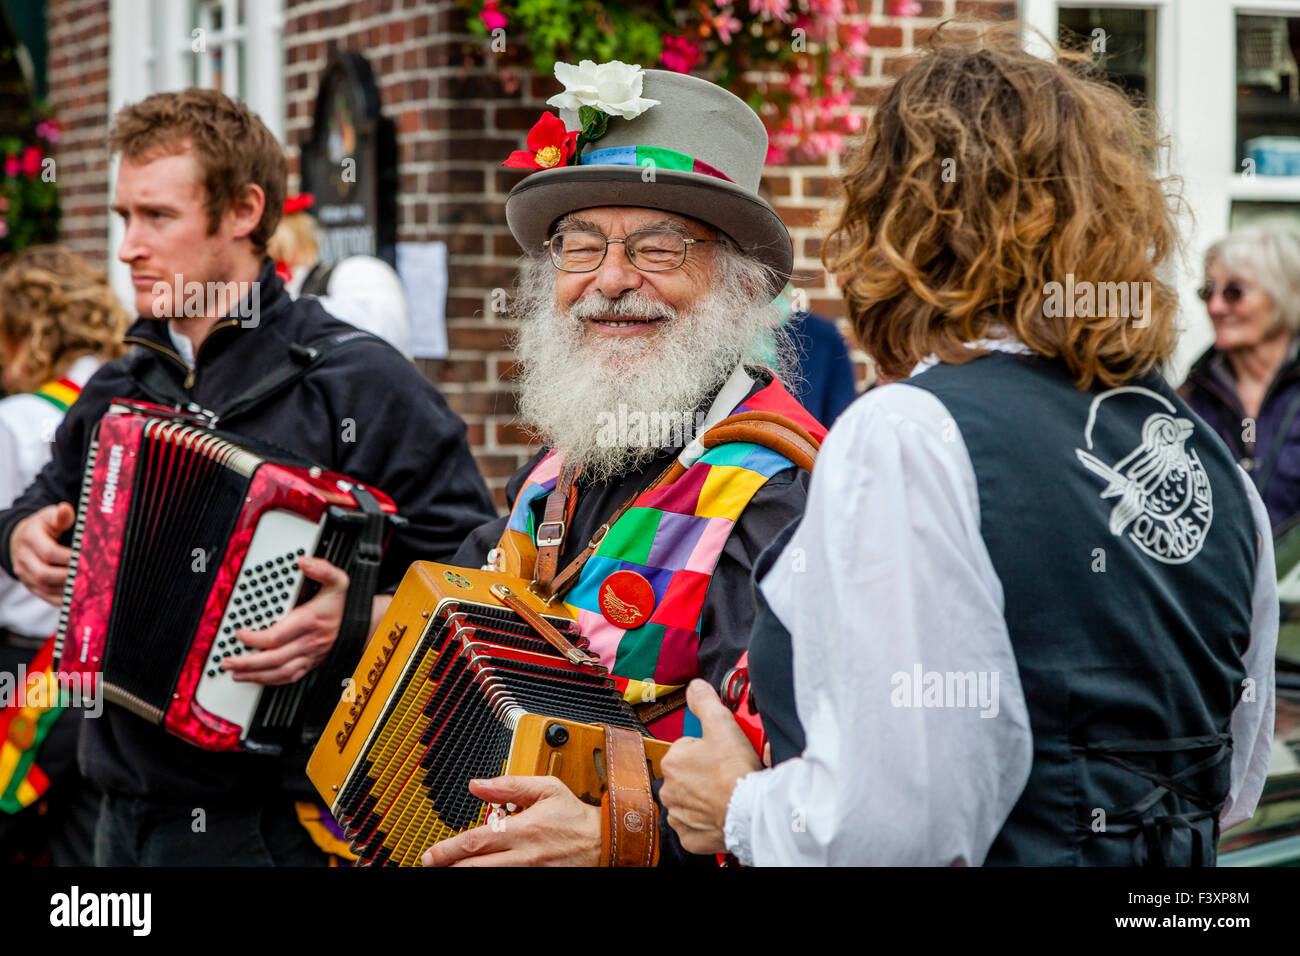 Morris Dancing Groups Performing In The Town of Lewes During The Towns Annual Folk Festival, Lewes, Sussex, UK - Stock Image